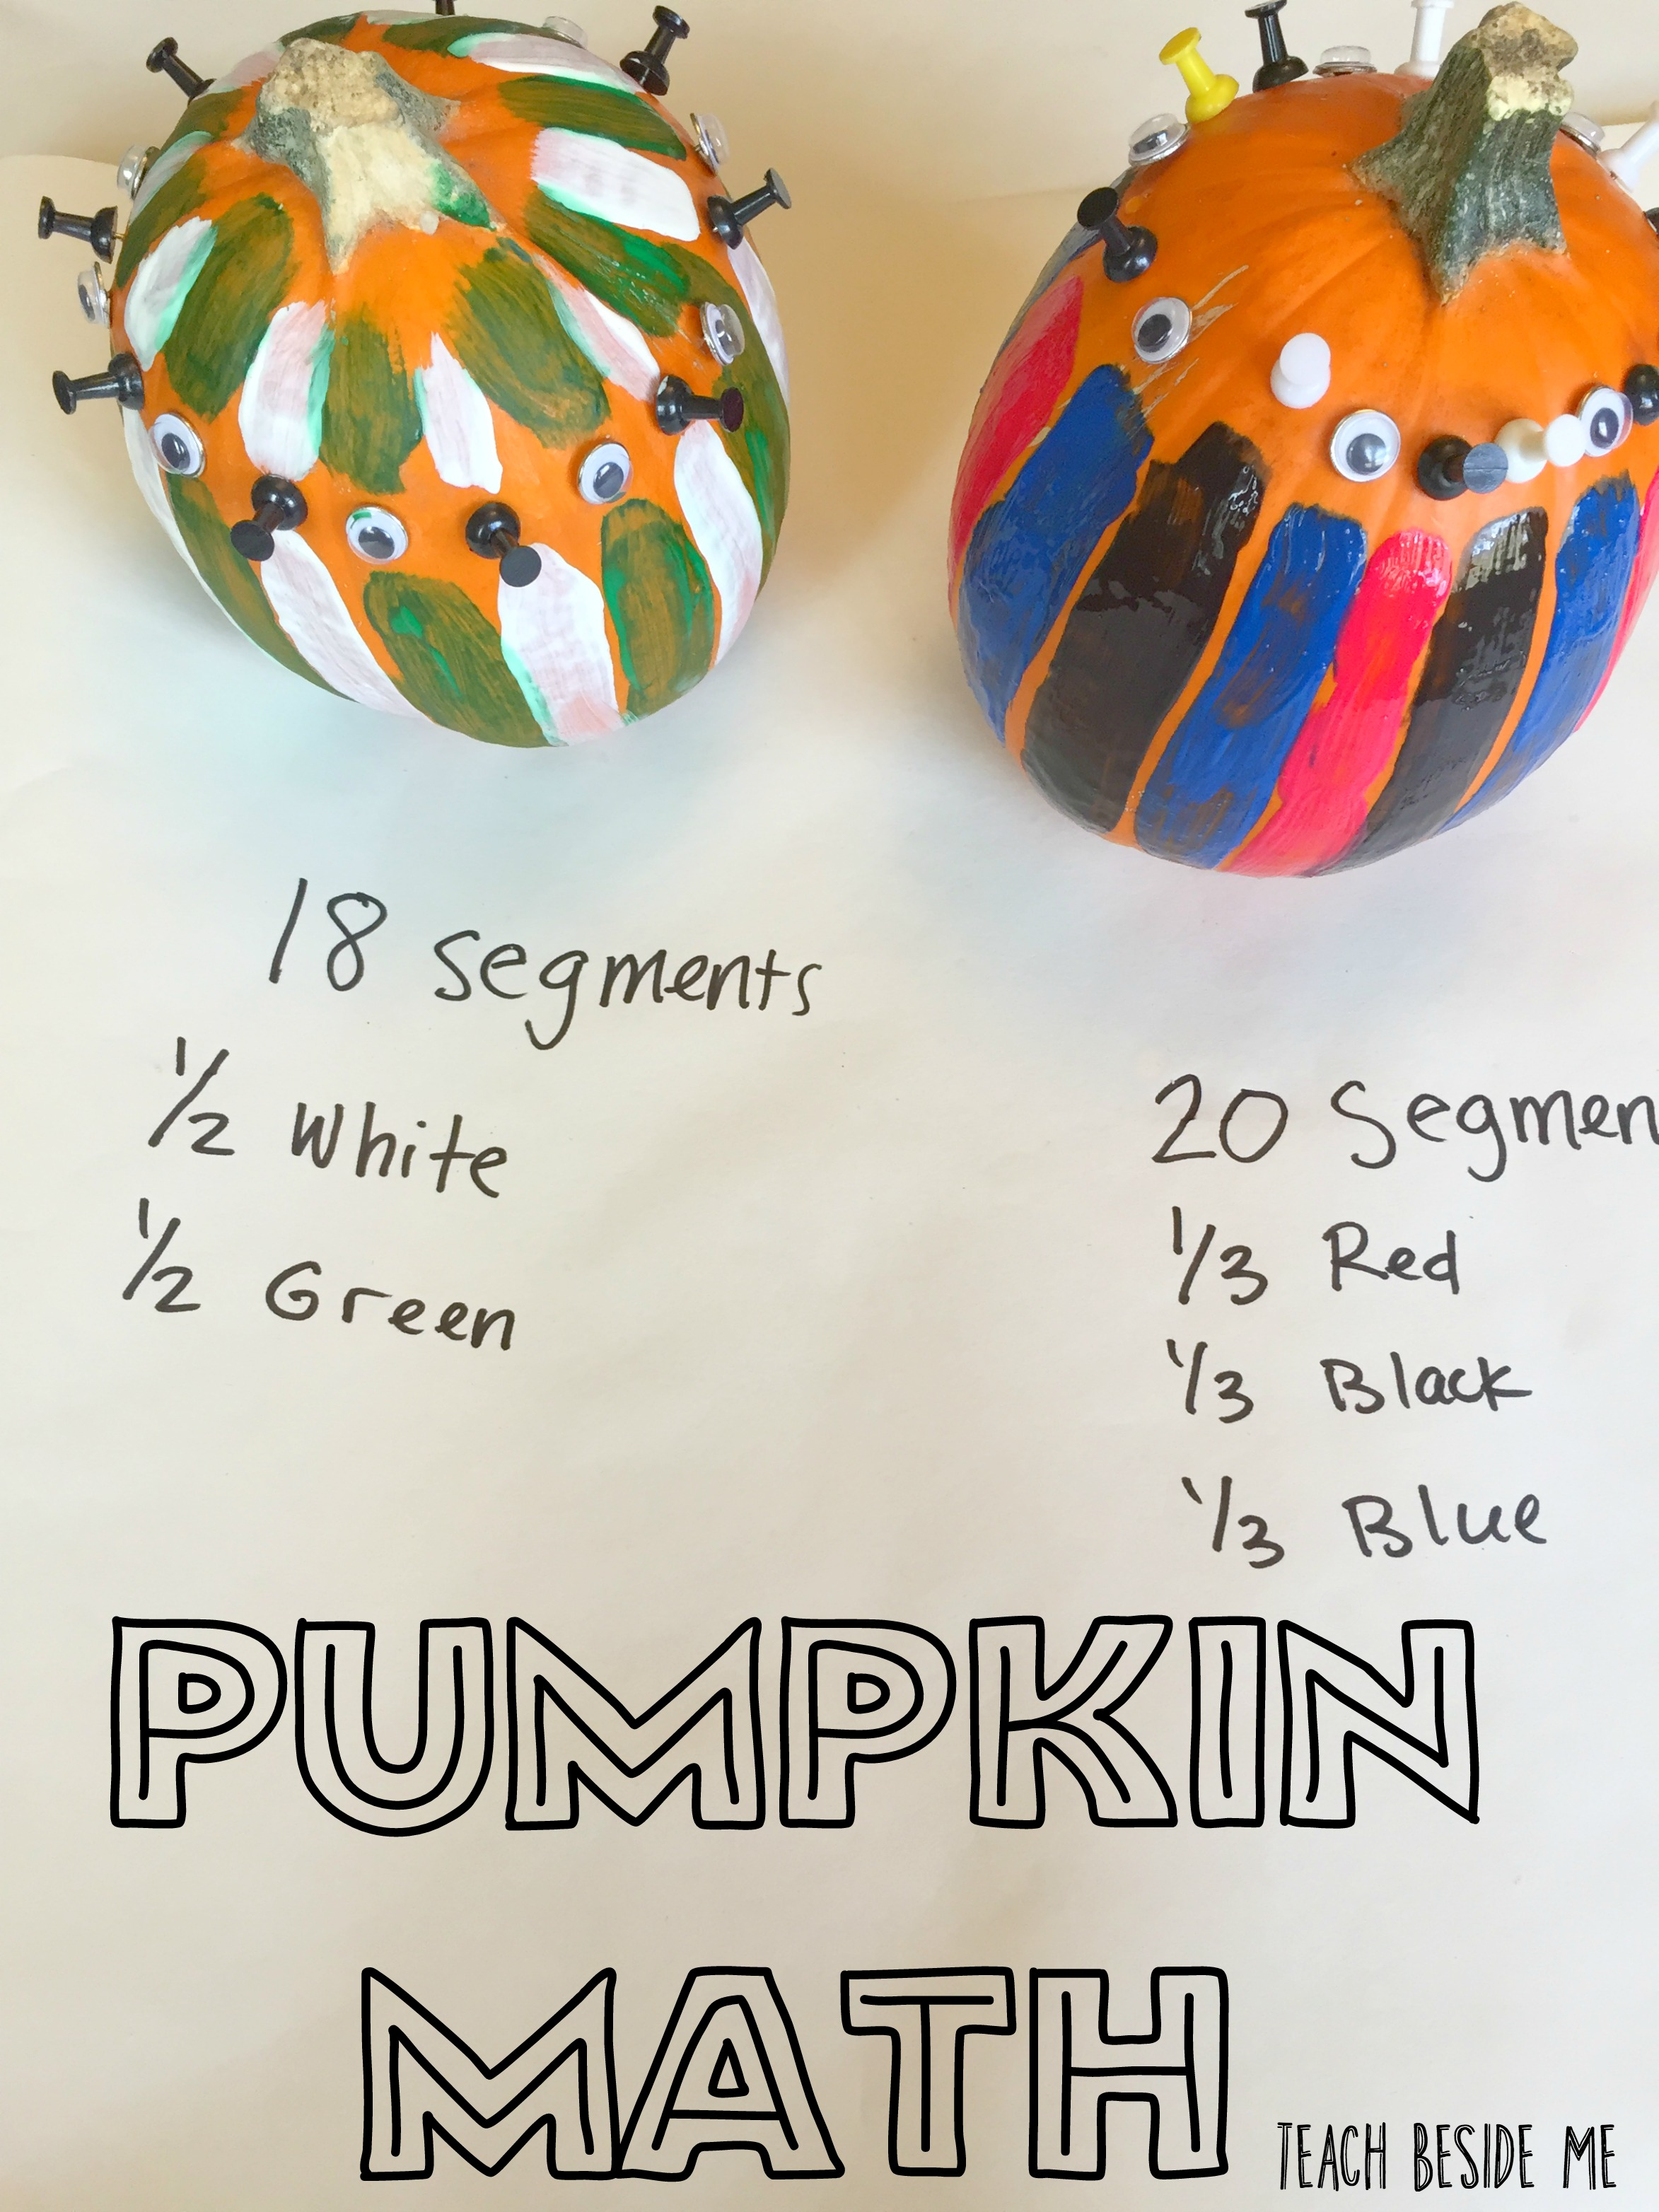 Pumpkin Math: How Many Segments?